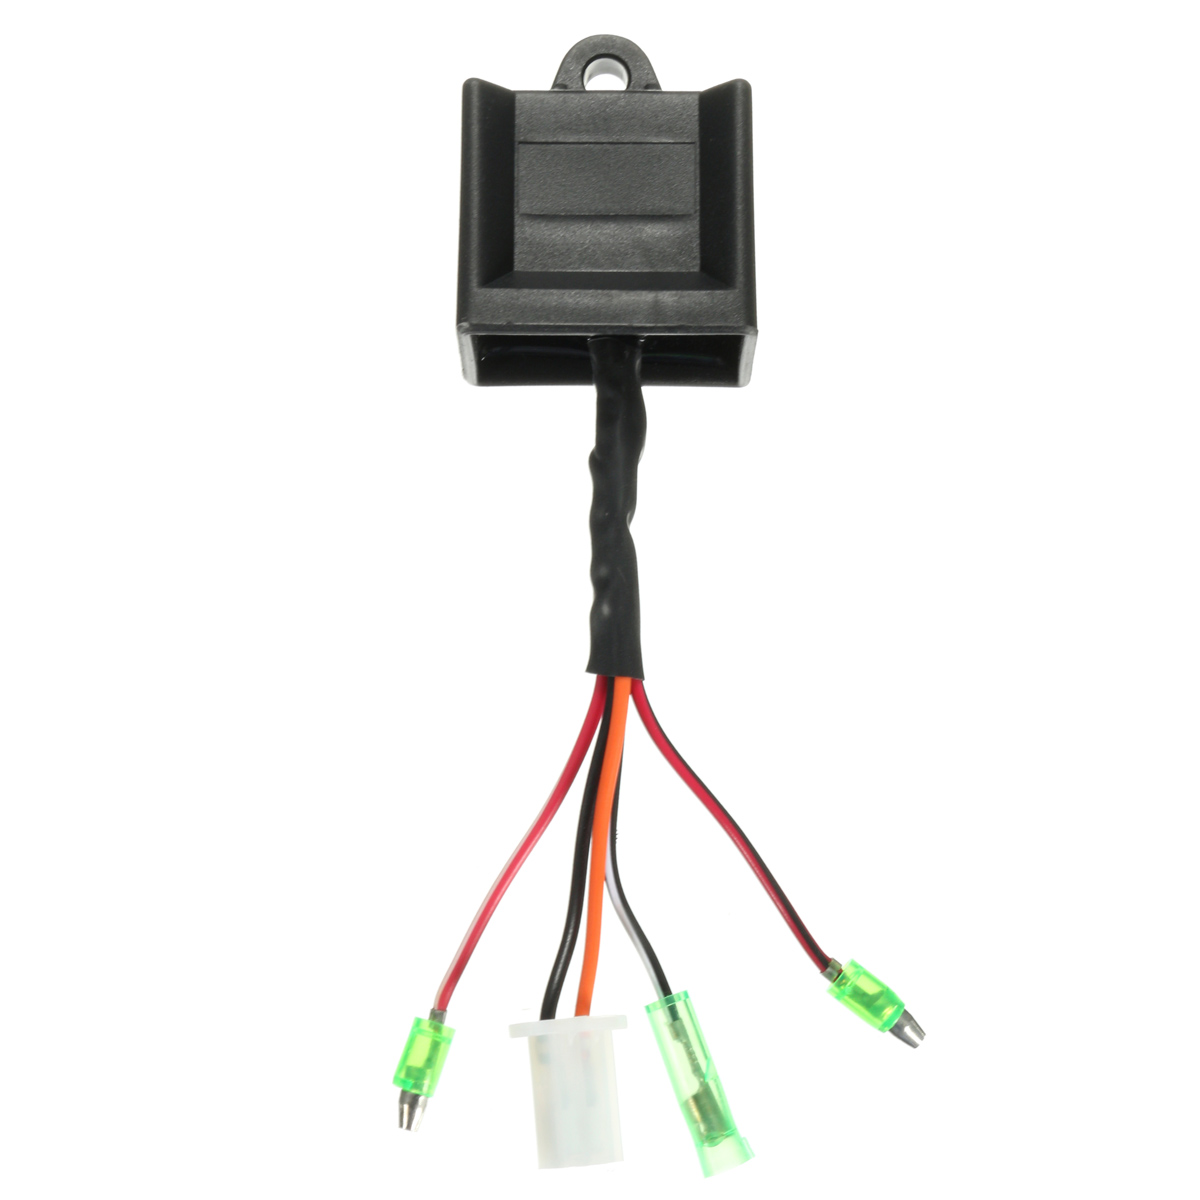 9cm 5 wires race ignition cdi box for polaris scrambler 50cc 90cc 100cc 110cc atv 2 stroke [ 1200 x 1200 Pixel ]